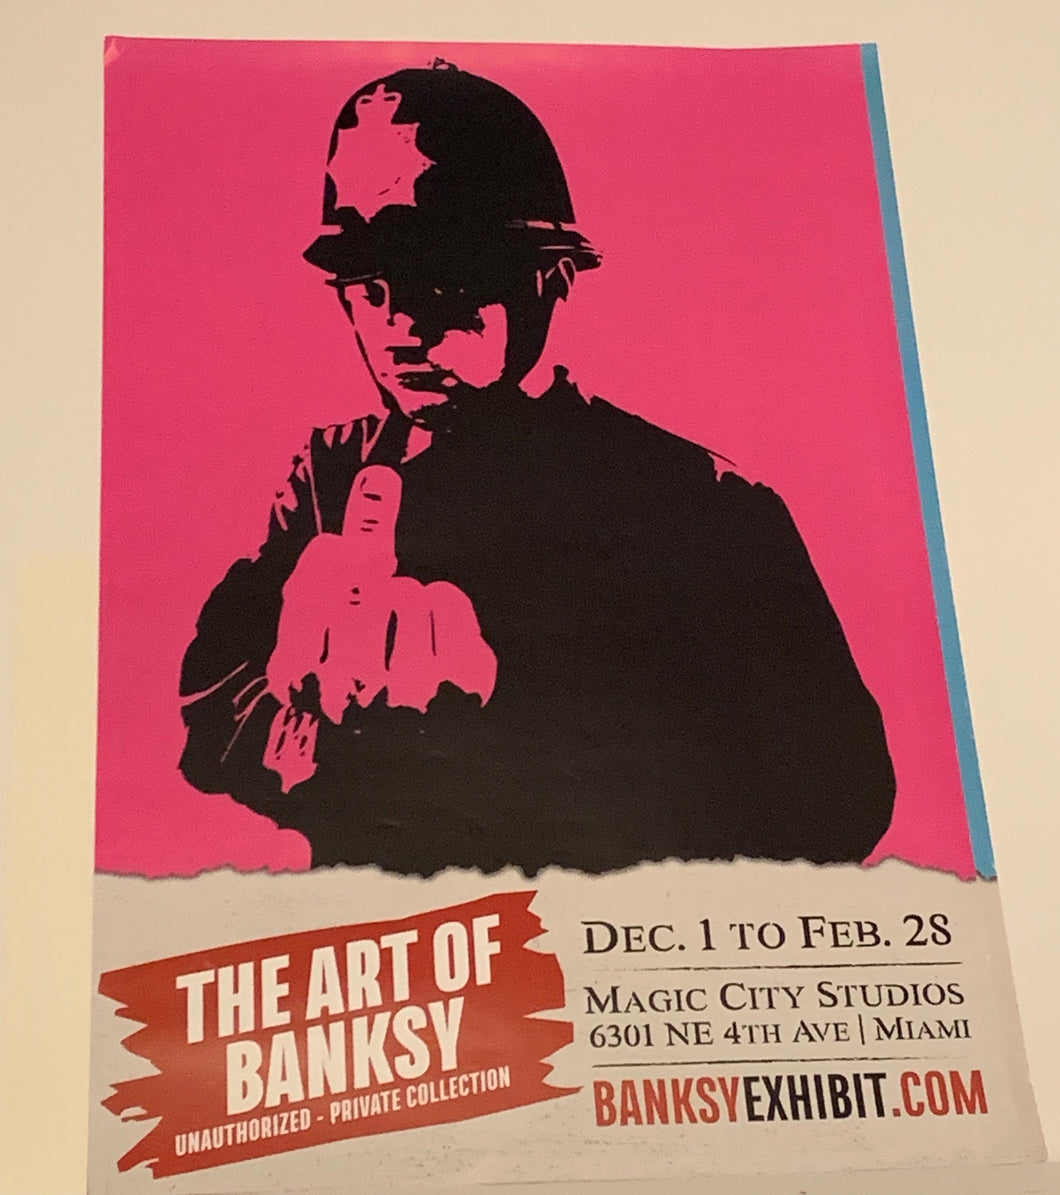 The Art of Banksy - Magic City Studios